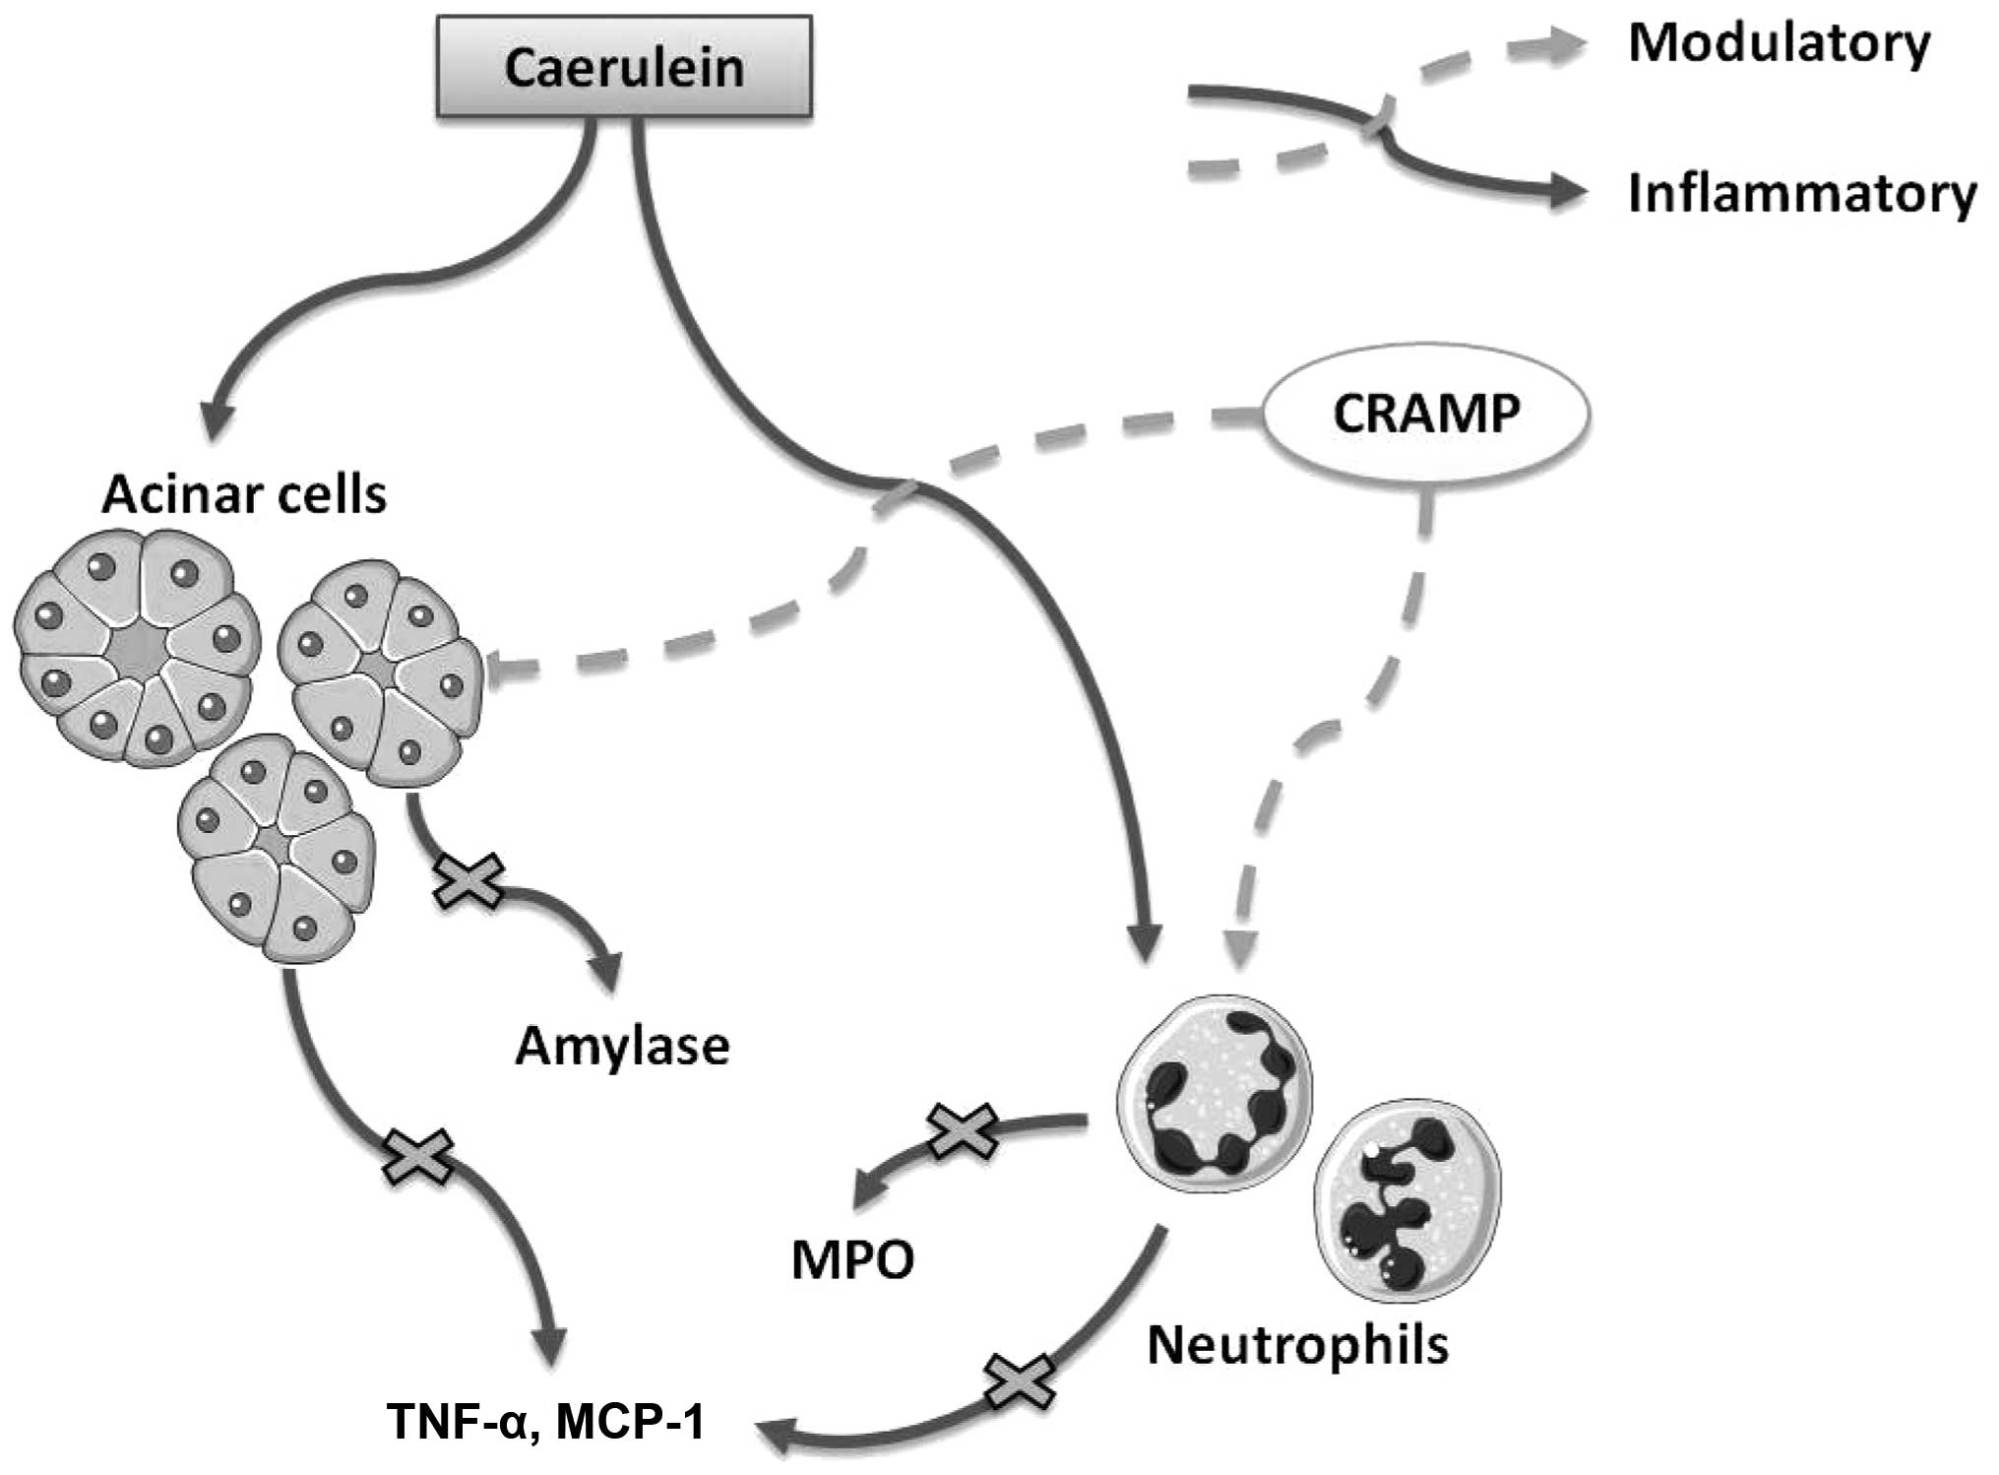 hight resolution of cramp modulates amylase release from acinar cells myeloperoxidase mpo release from neutrophils and the production of inflammatory cytokines during ap